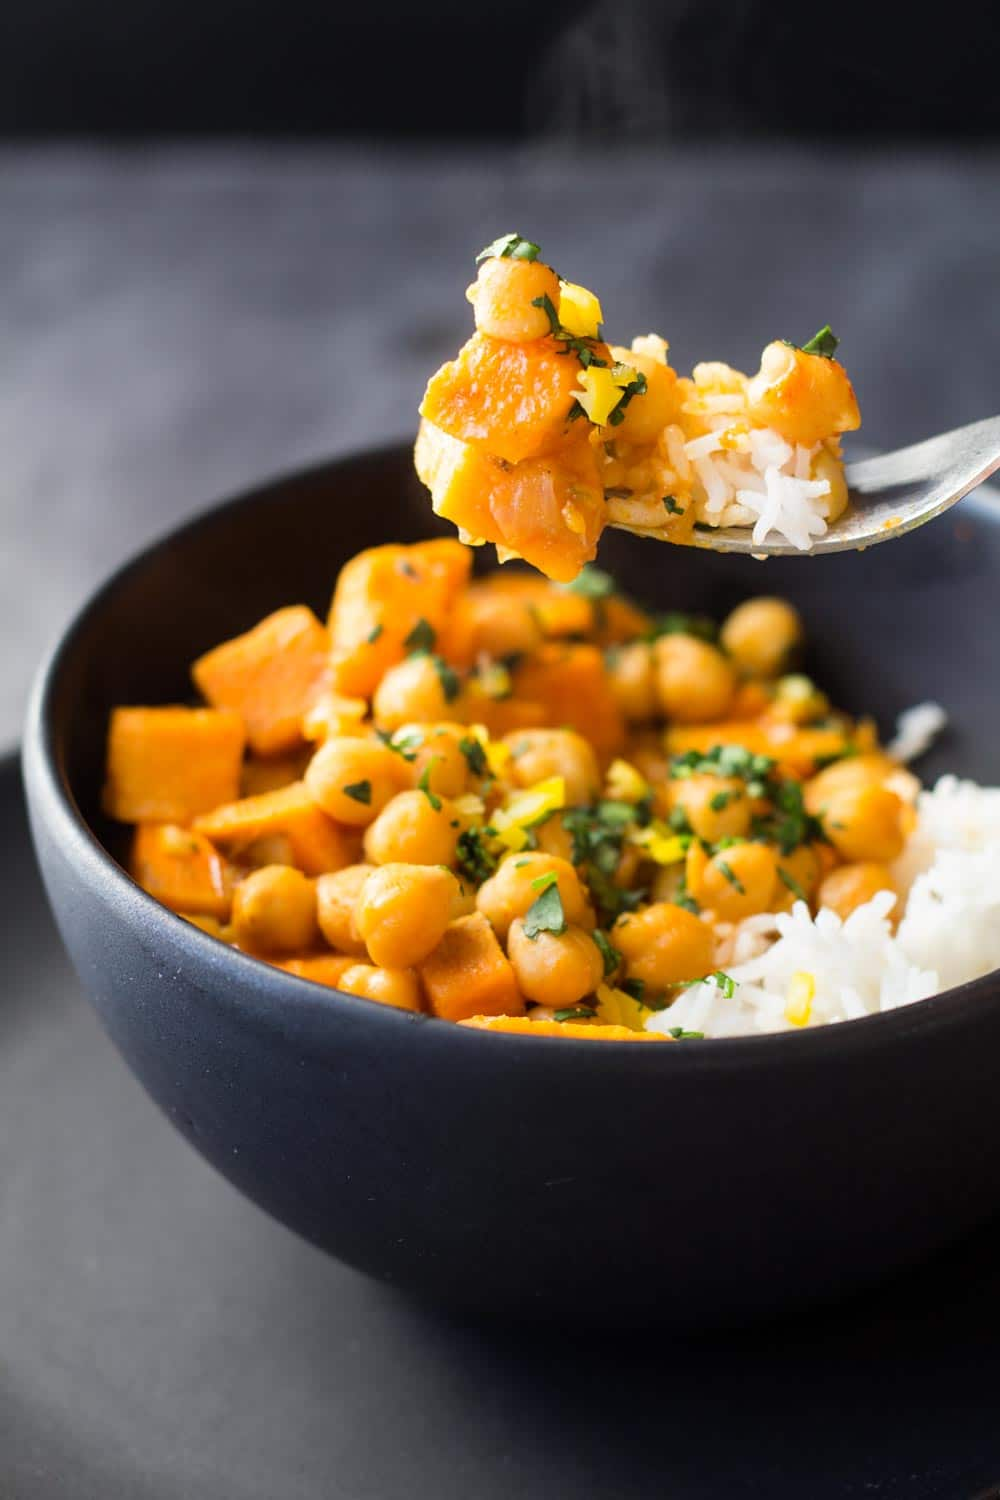 Vegan Chickpea Curry on fork over black bowl